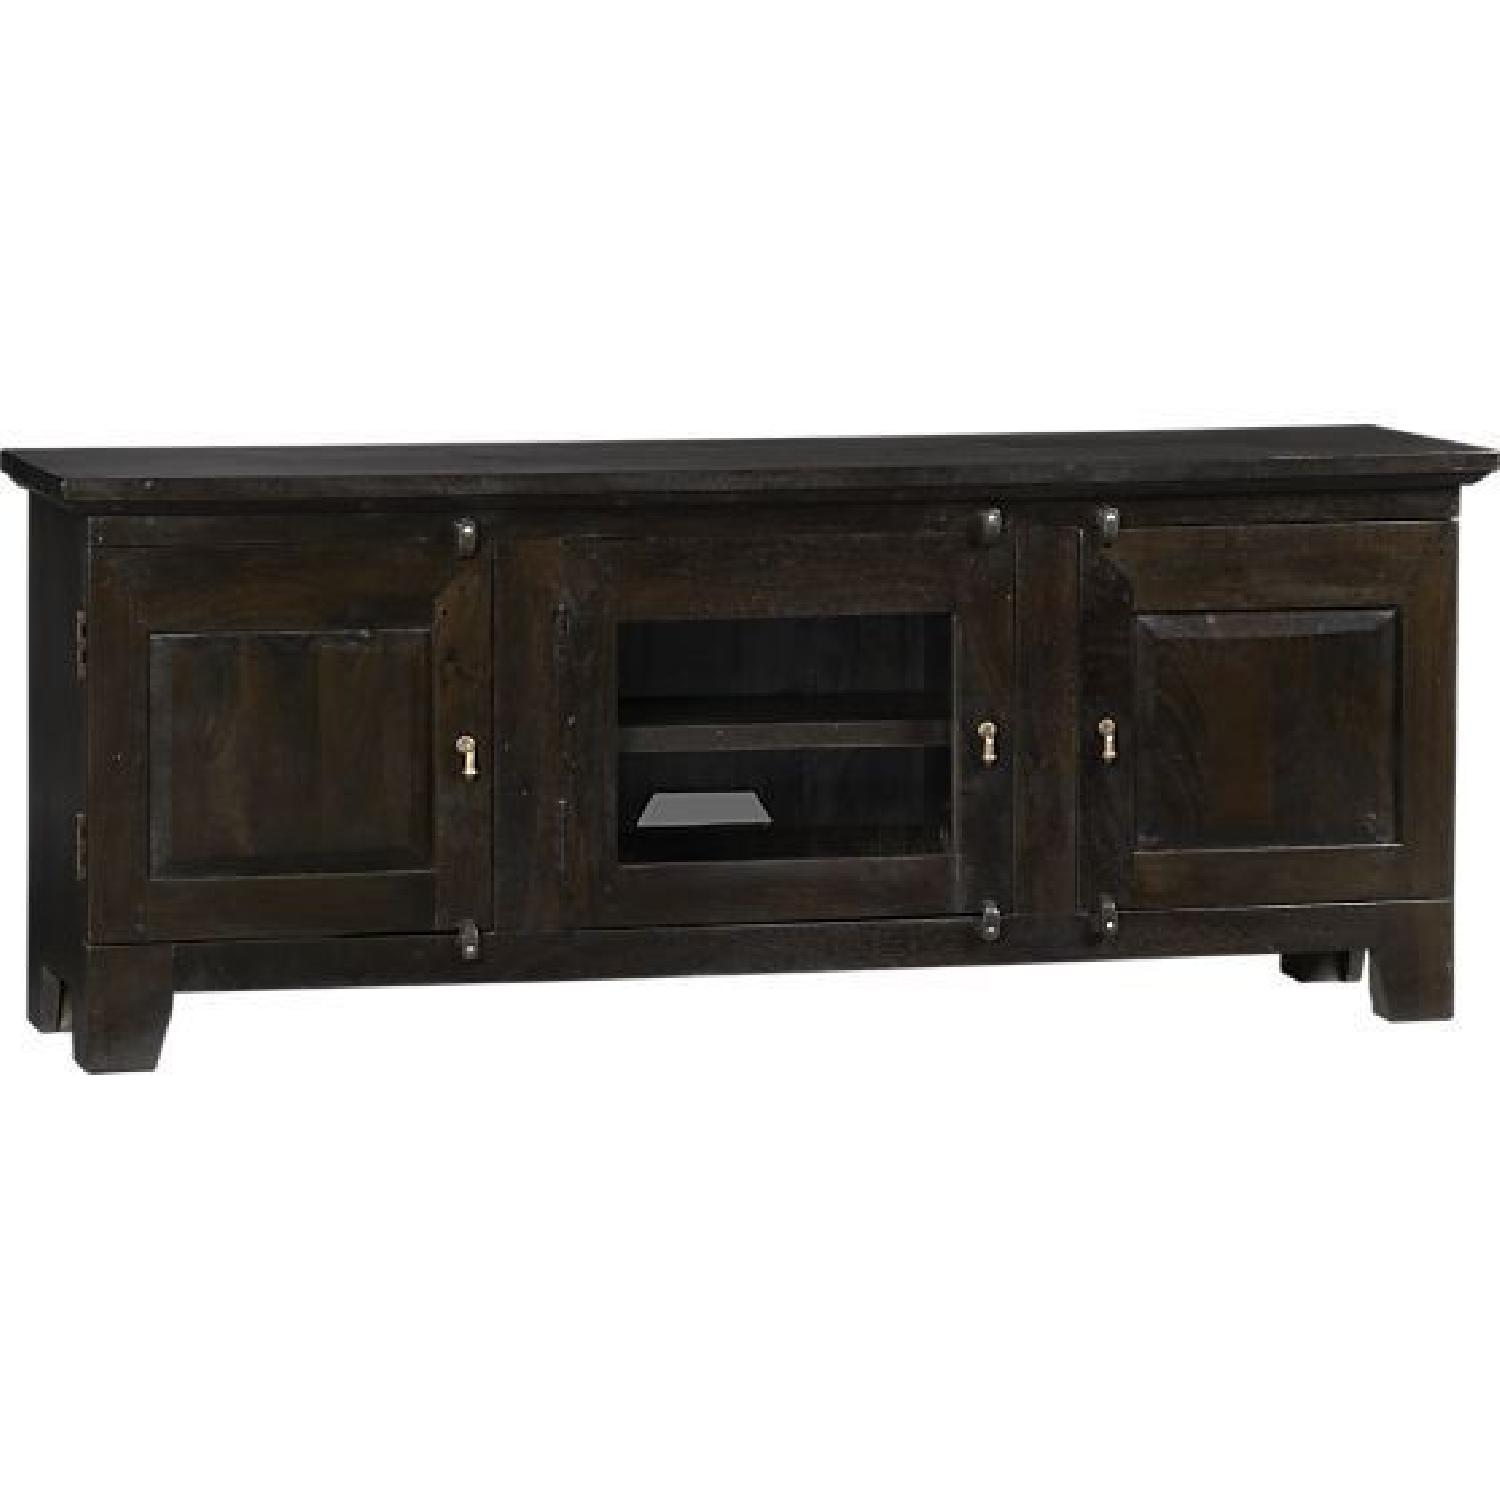 Crate & Barrel 3 Door Media Console - image-0